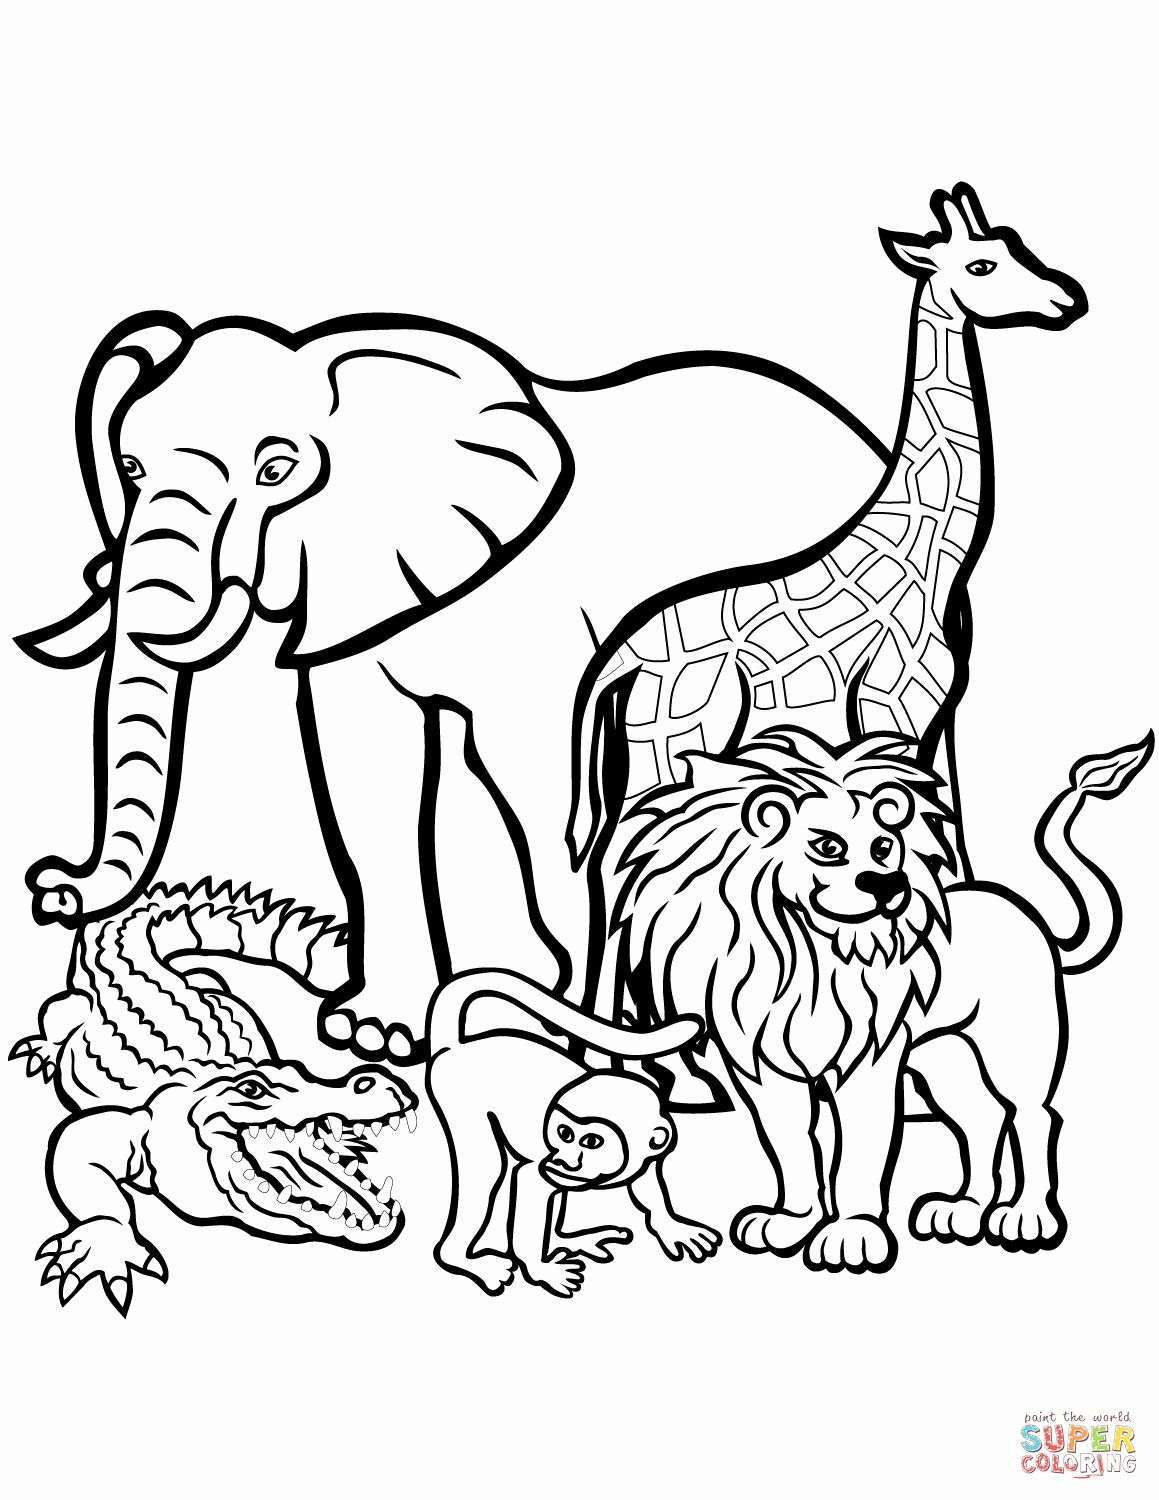 baby zoo animal coloring pages free printable zoo coloring pages for kids coloring pages baby animal zoo